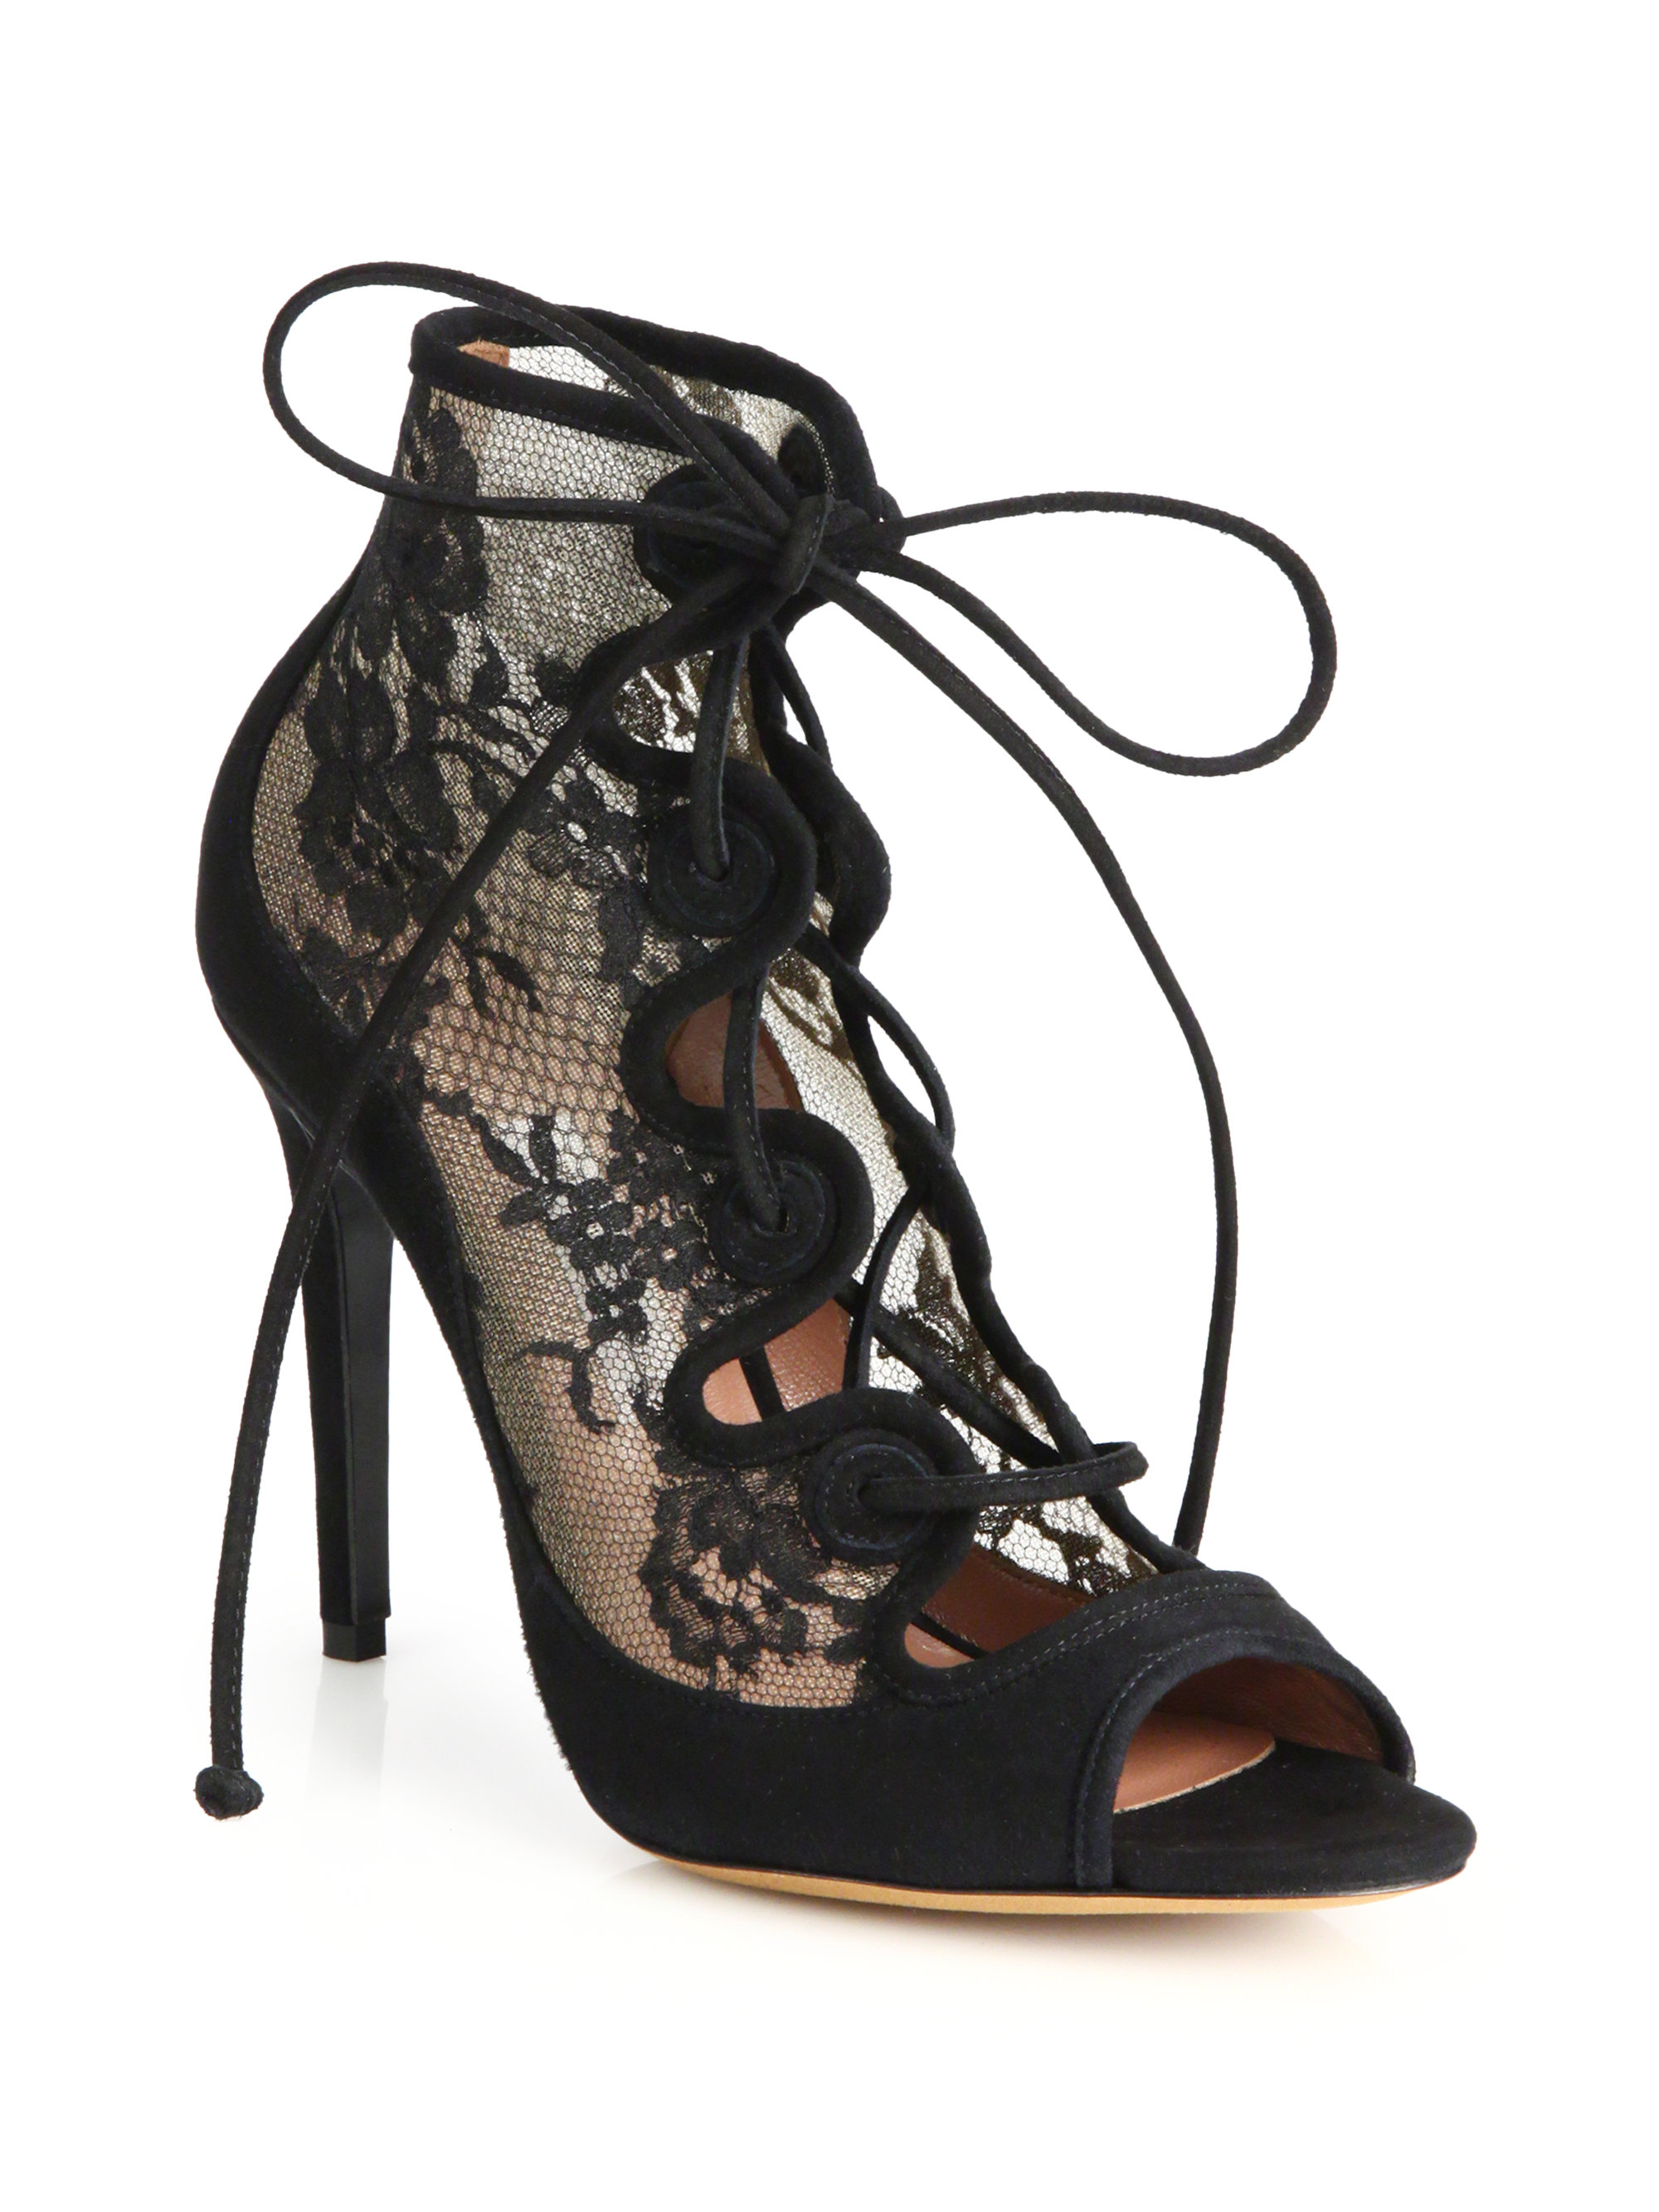 Tabitha Simmons Chaussures À Lacets AX20Zb